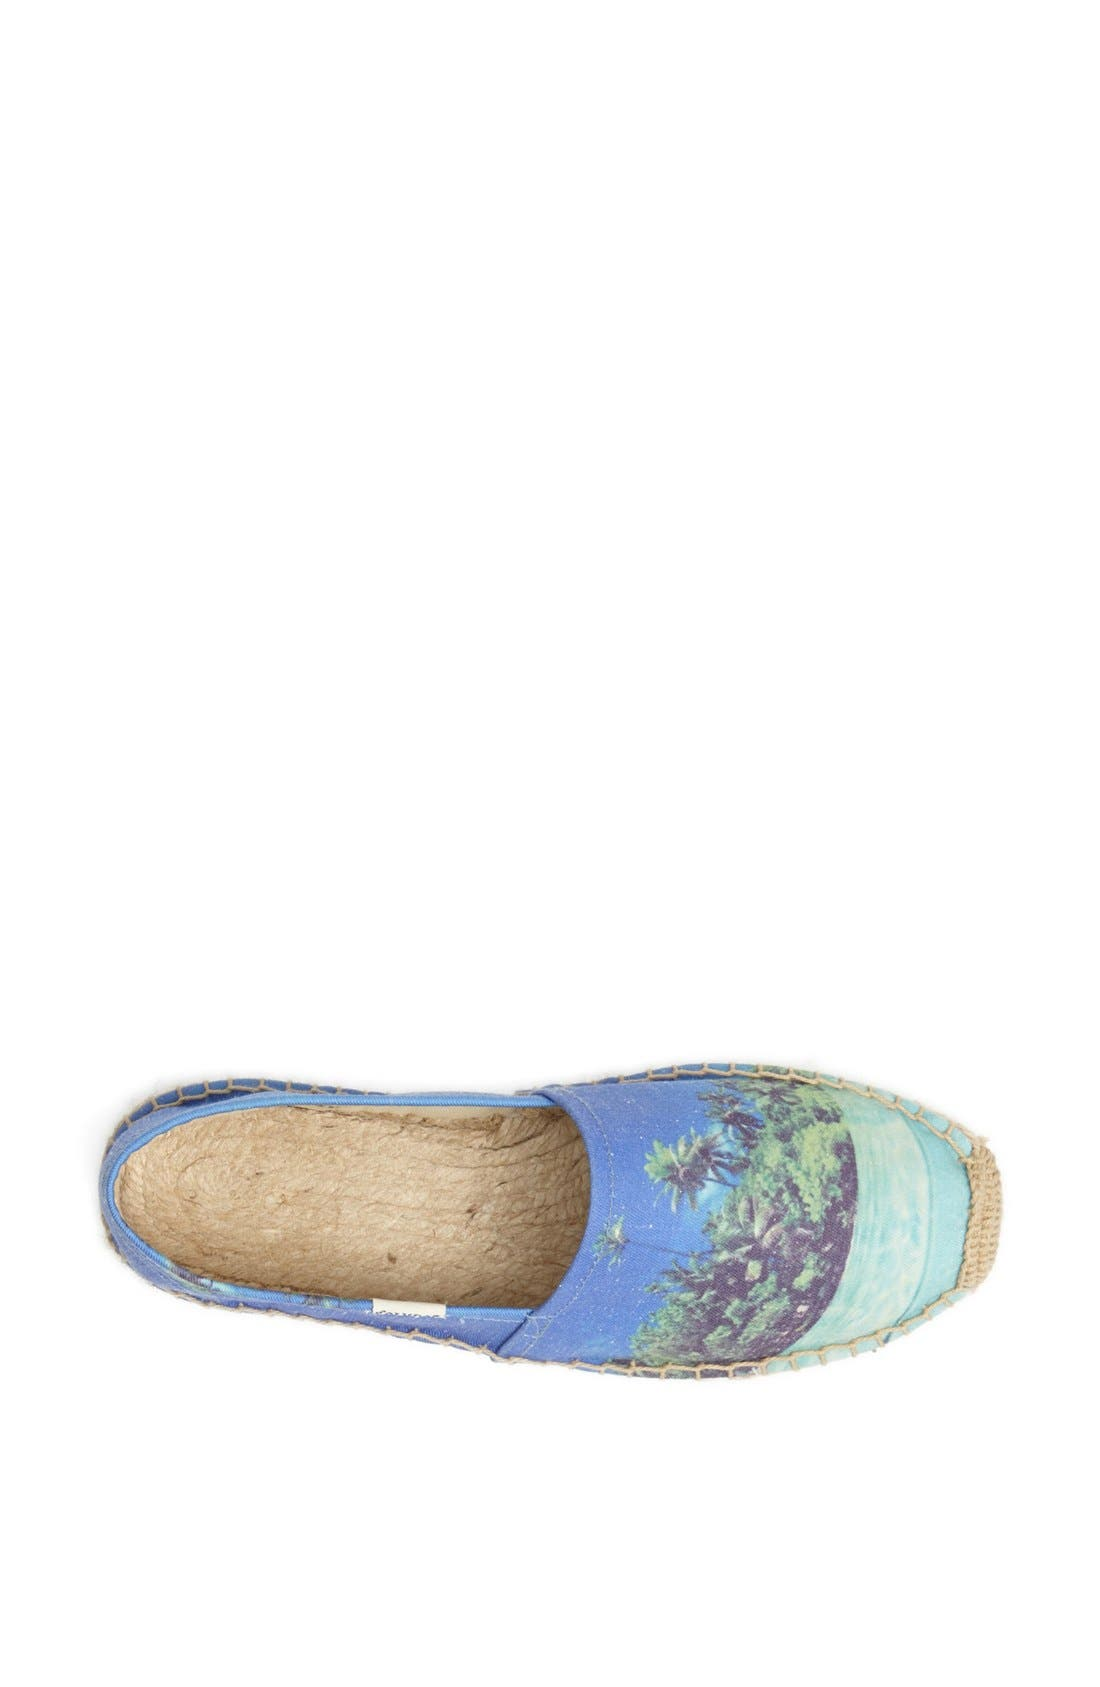 Alternate Image 3  - We Are Handsome x Soludos Slip-On (Limited Edition) (Women)